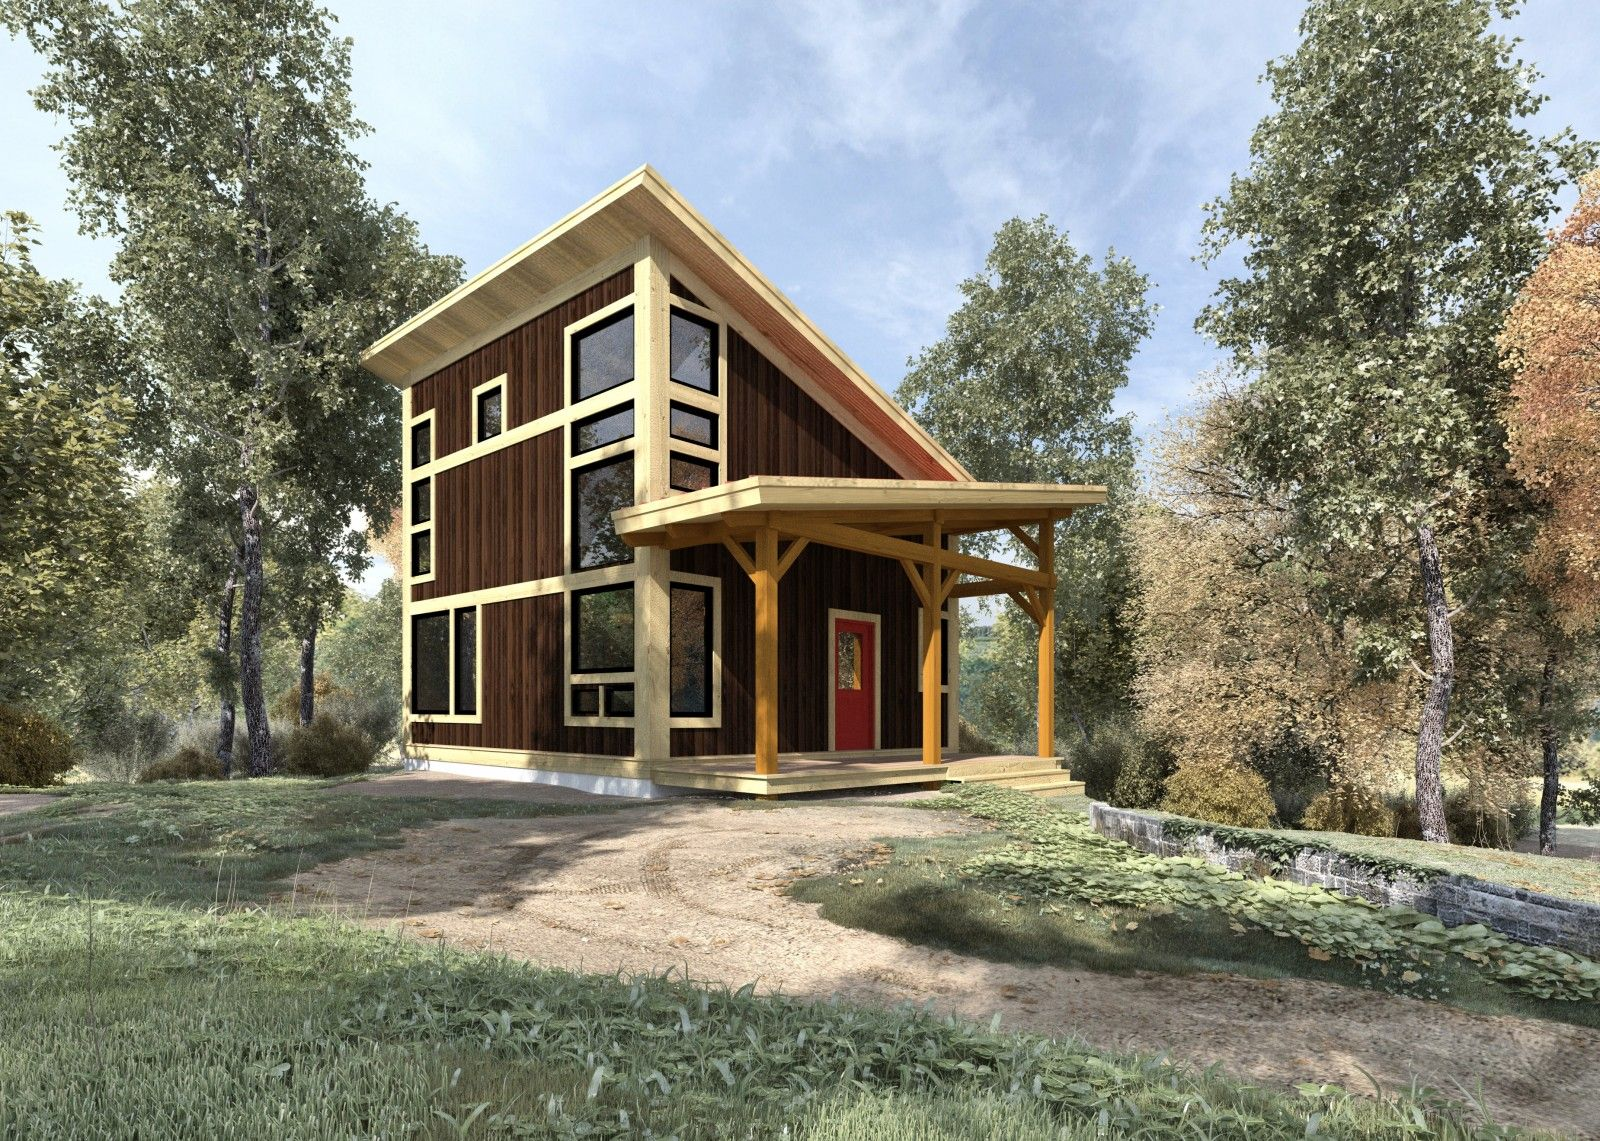 timber home design. From the cabin series of timber frame home designs Brookside  844 sq ft